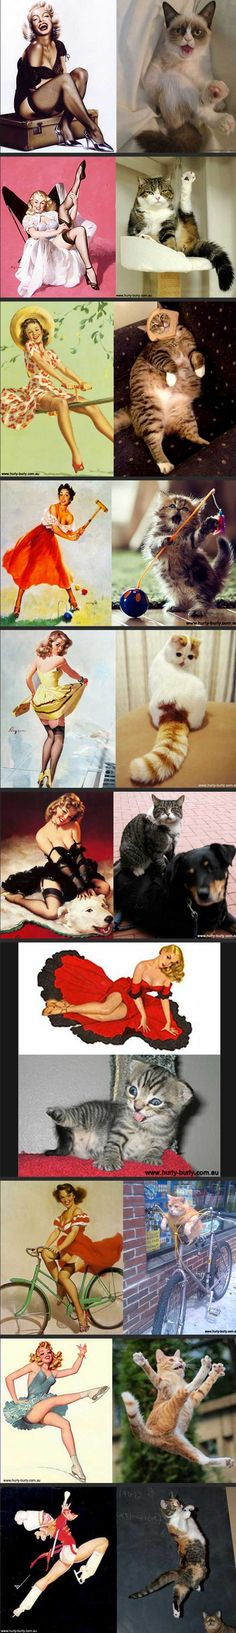 Pin-up pets..lol!